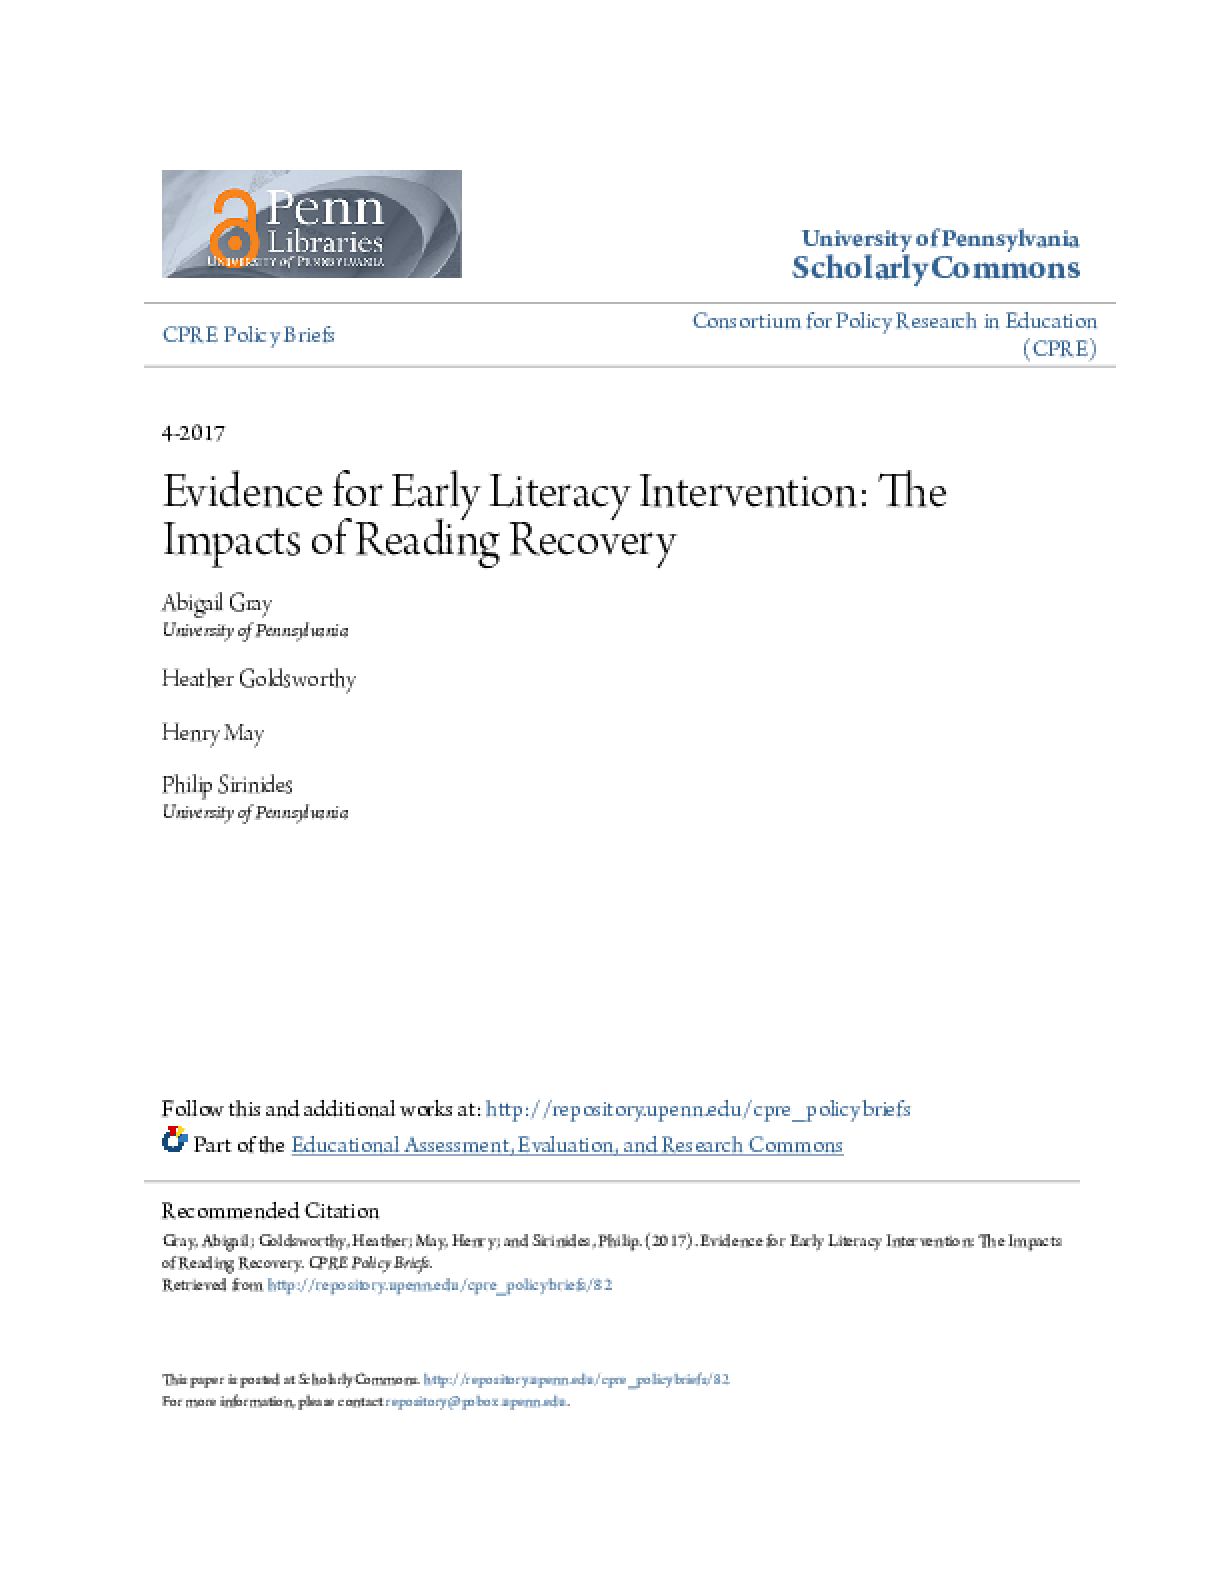 Evidence for Early Literacy Intervention: The Impacts of Reading Recovery